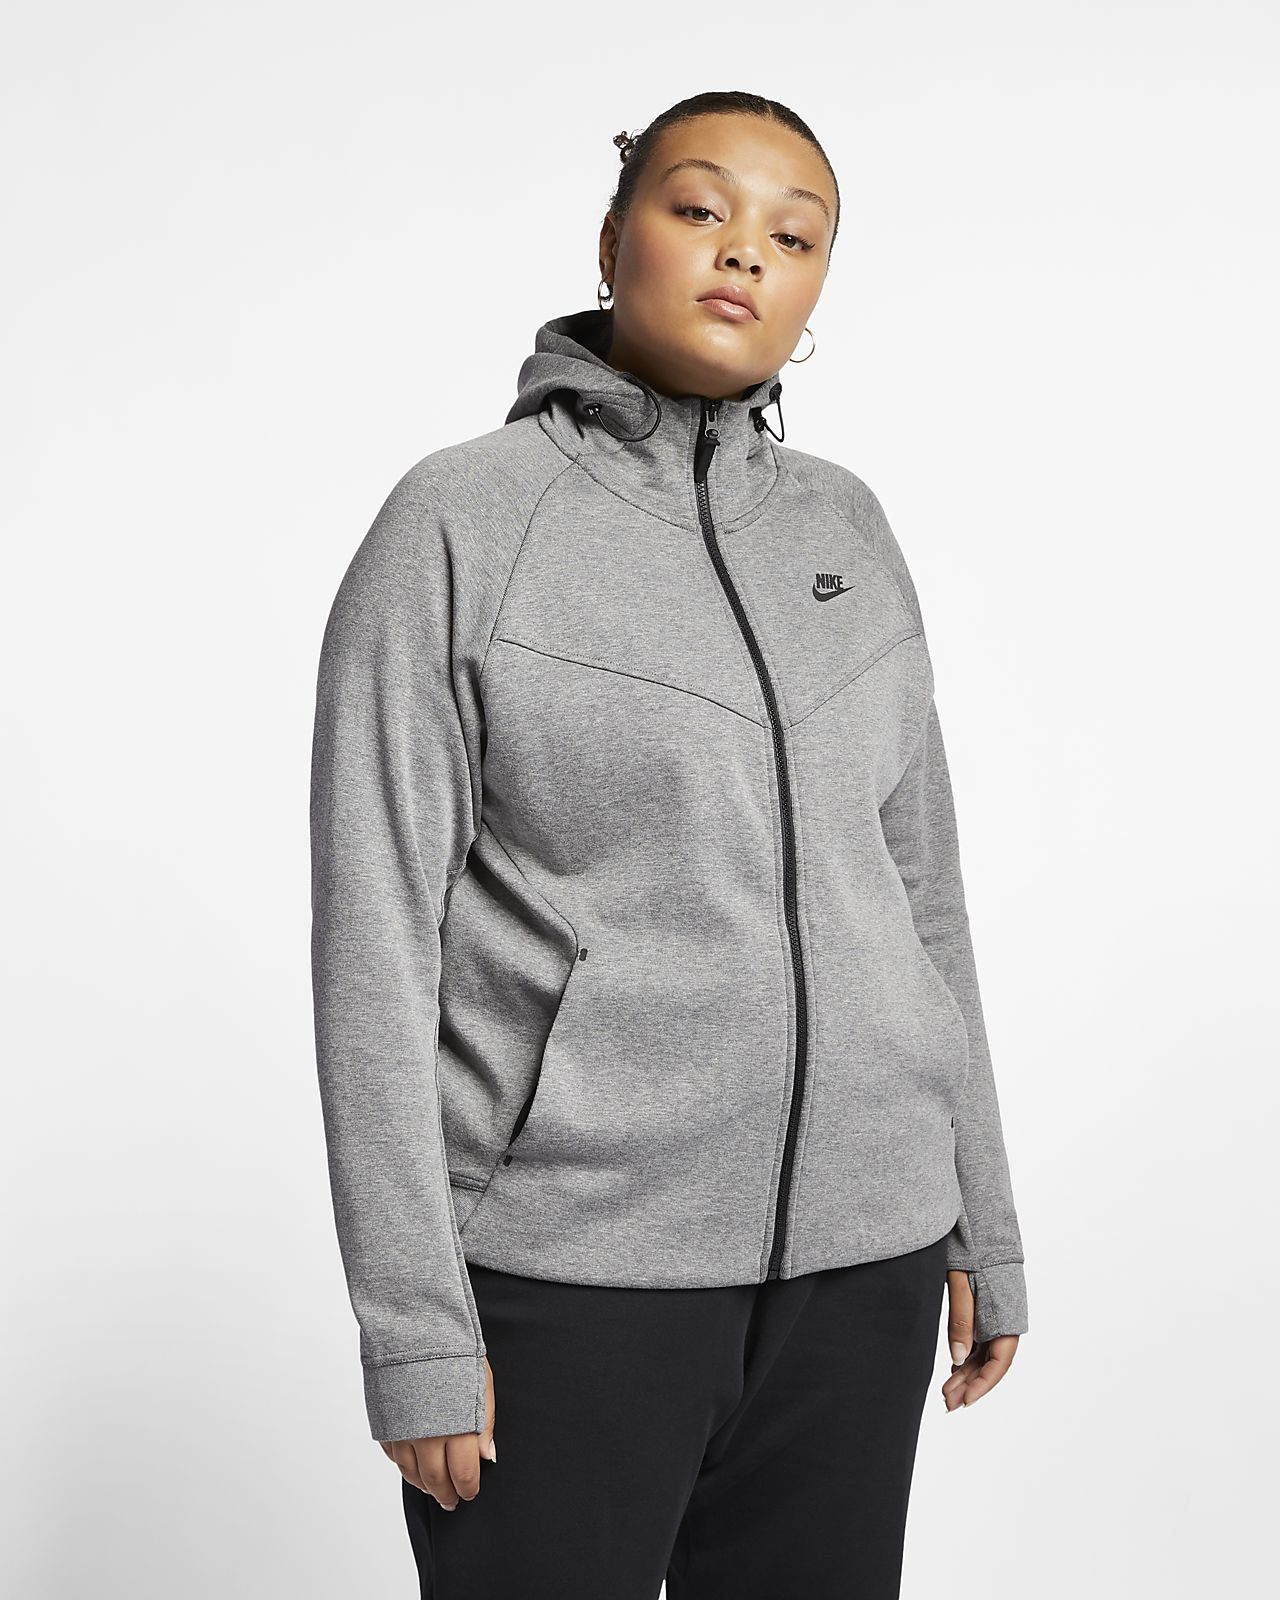 61f032a6bab8 Nike Sportswear Tech Fleece (Plus Size) Women s Full-Zip Hoodie ...